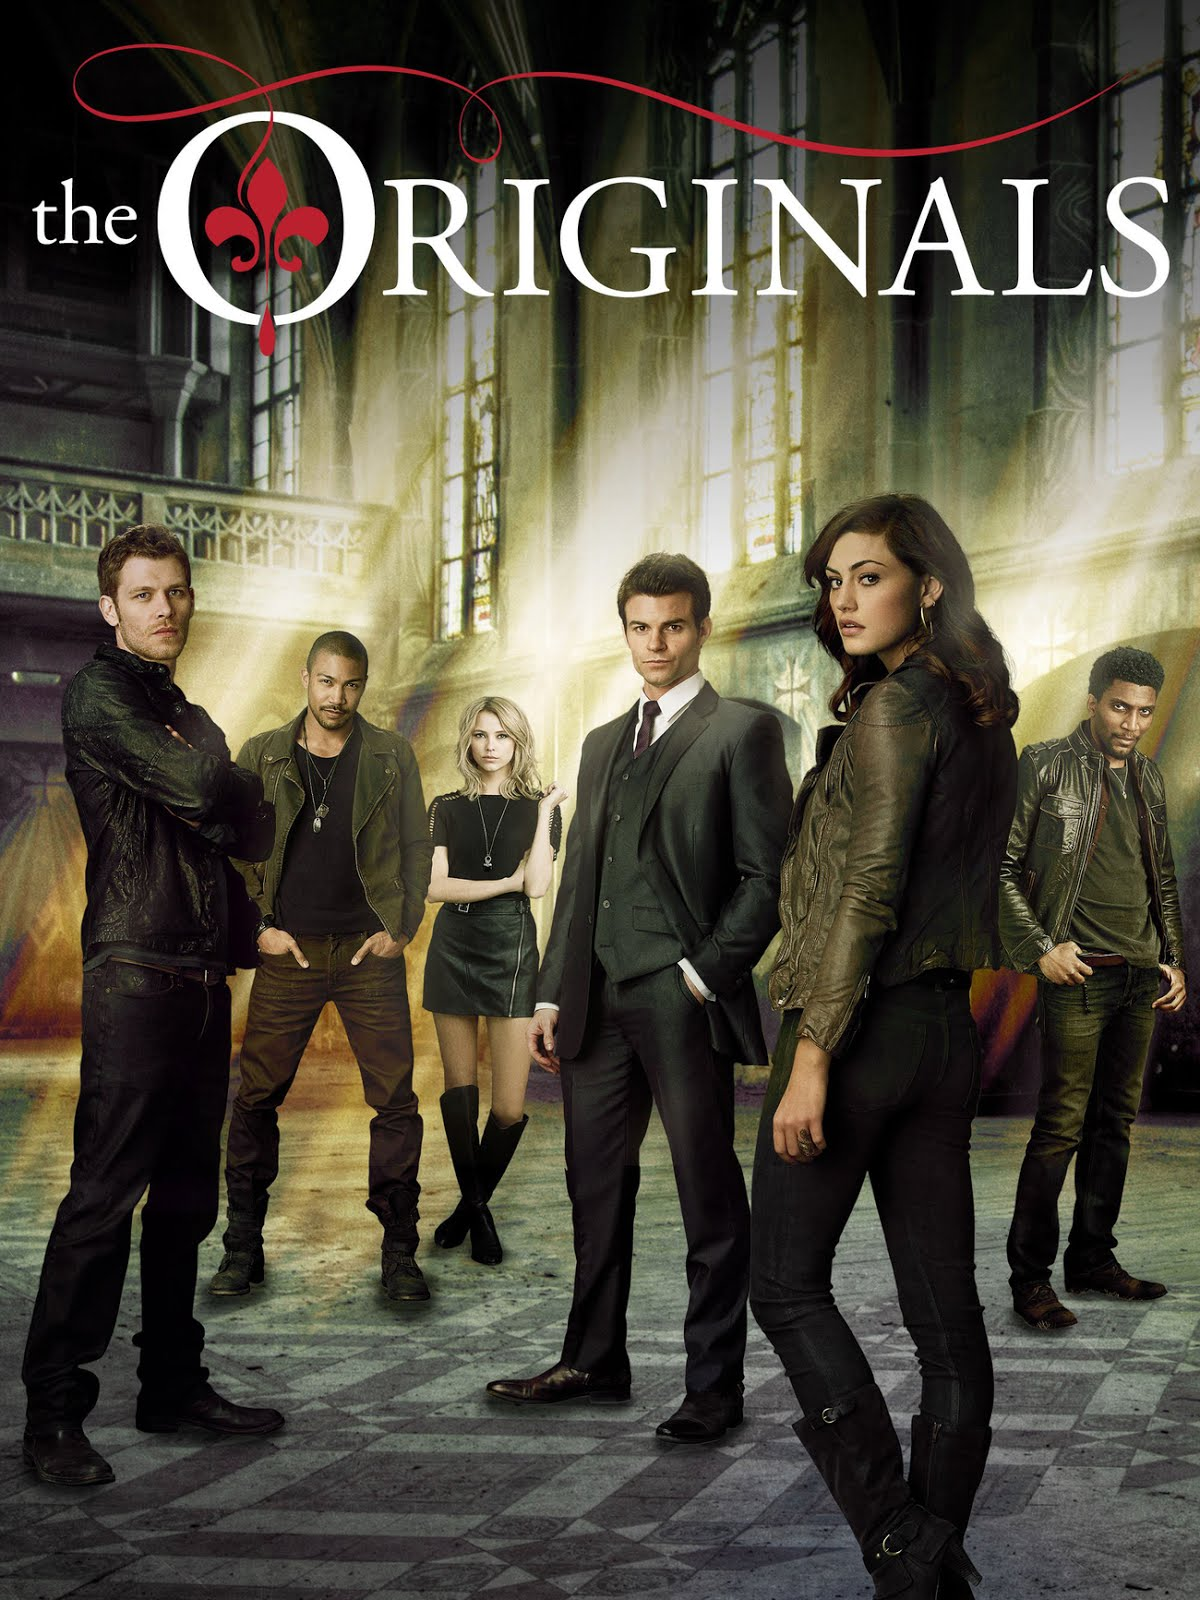 The Originals S01 Episode 05 Dual Audio 720p BluRay x264 [Hindi + English] ESubs